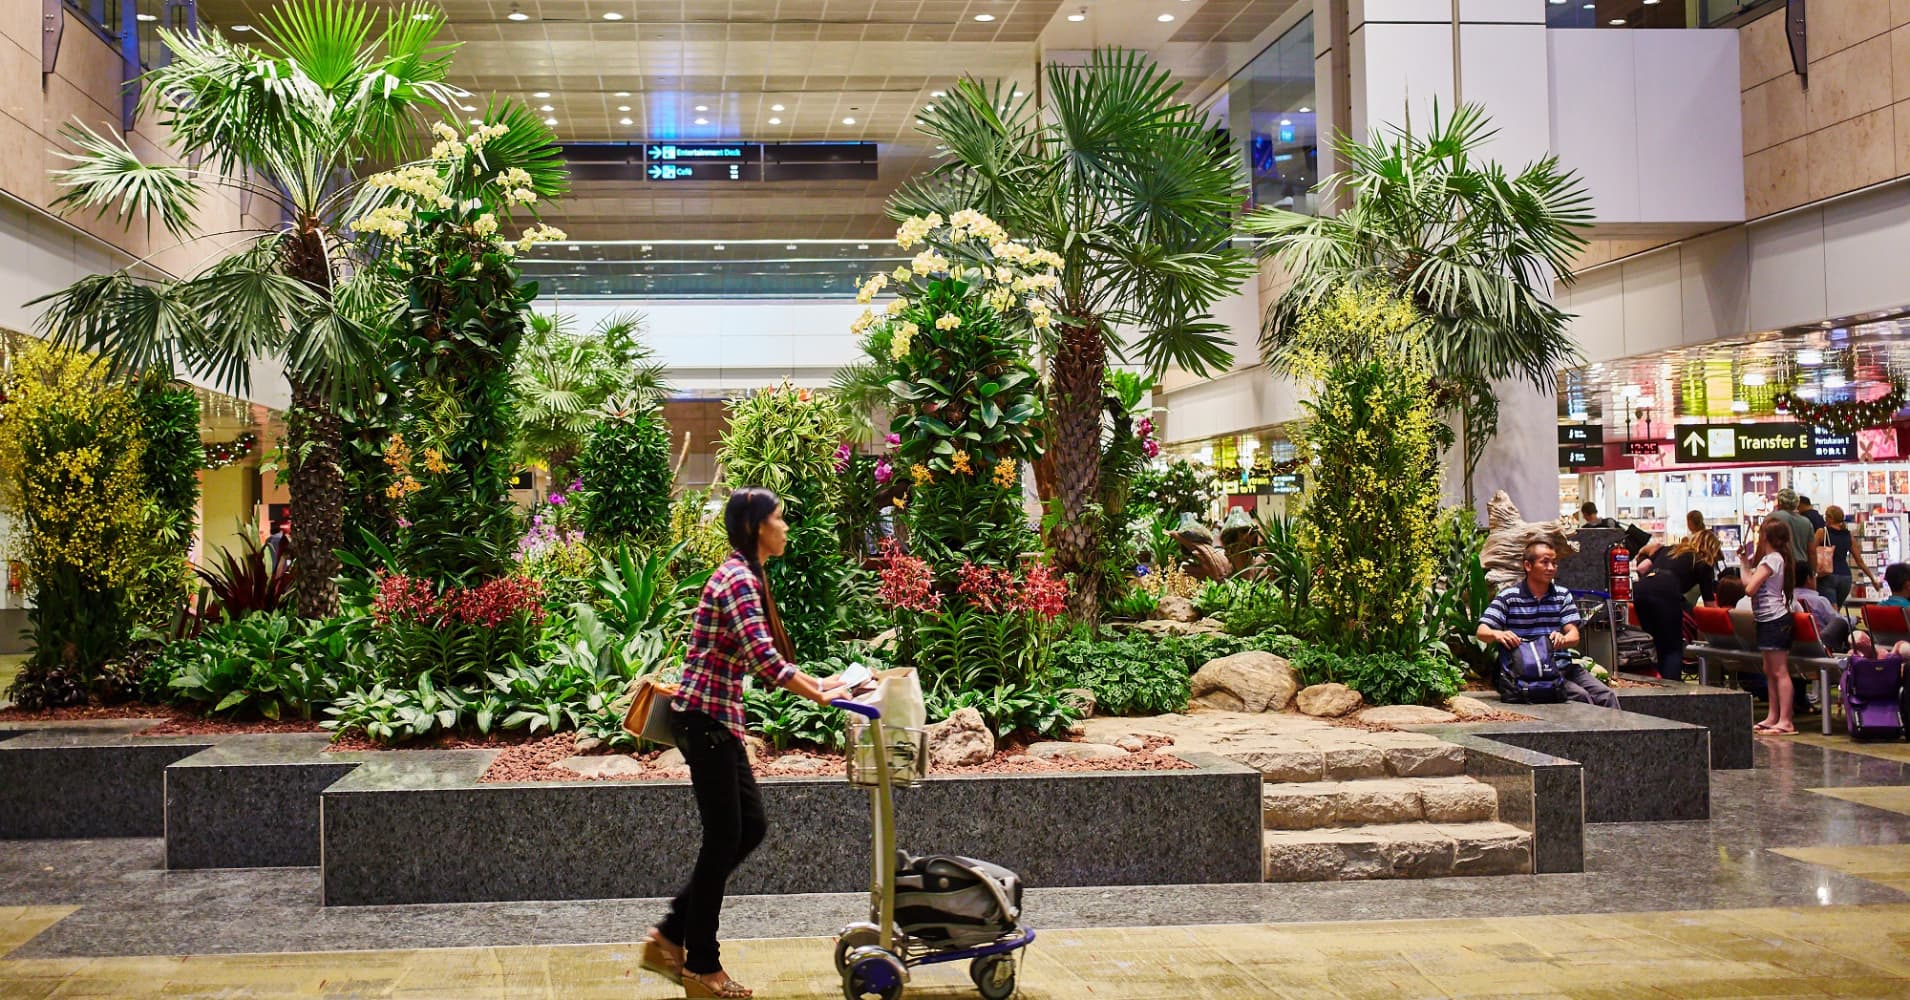 Singapore's airport is ranked the best in the world — take a look inside